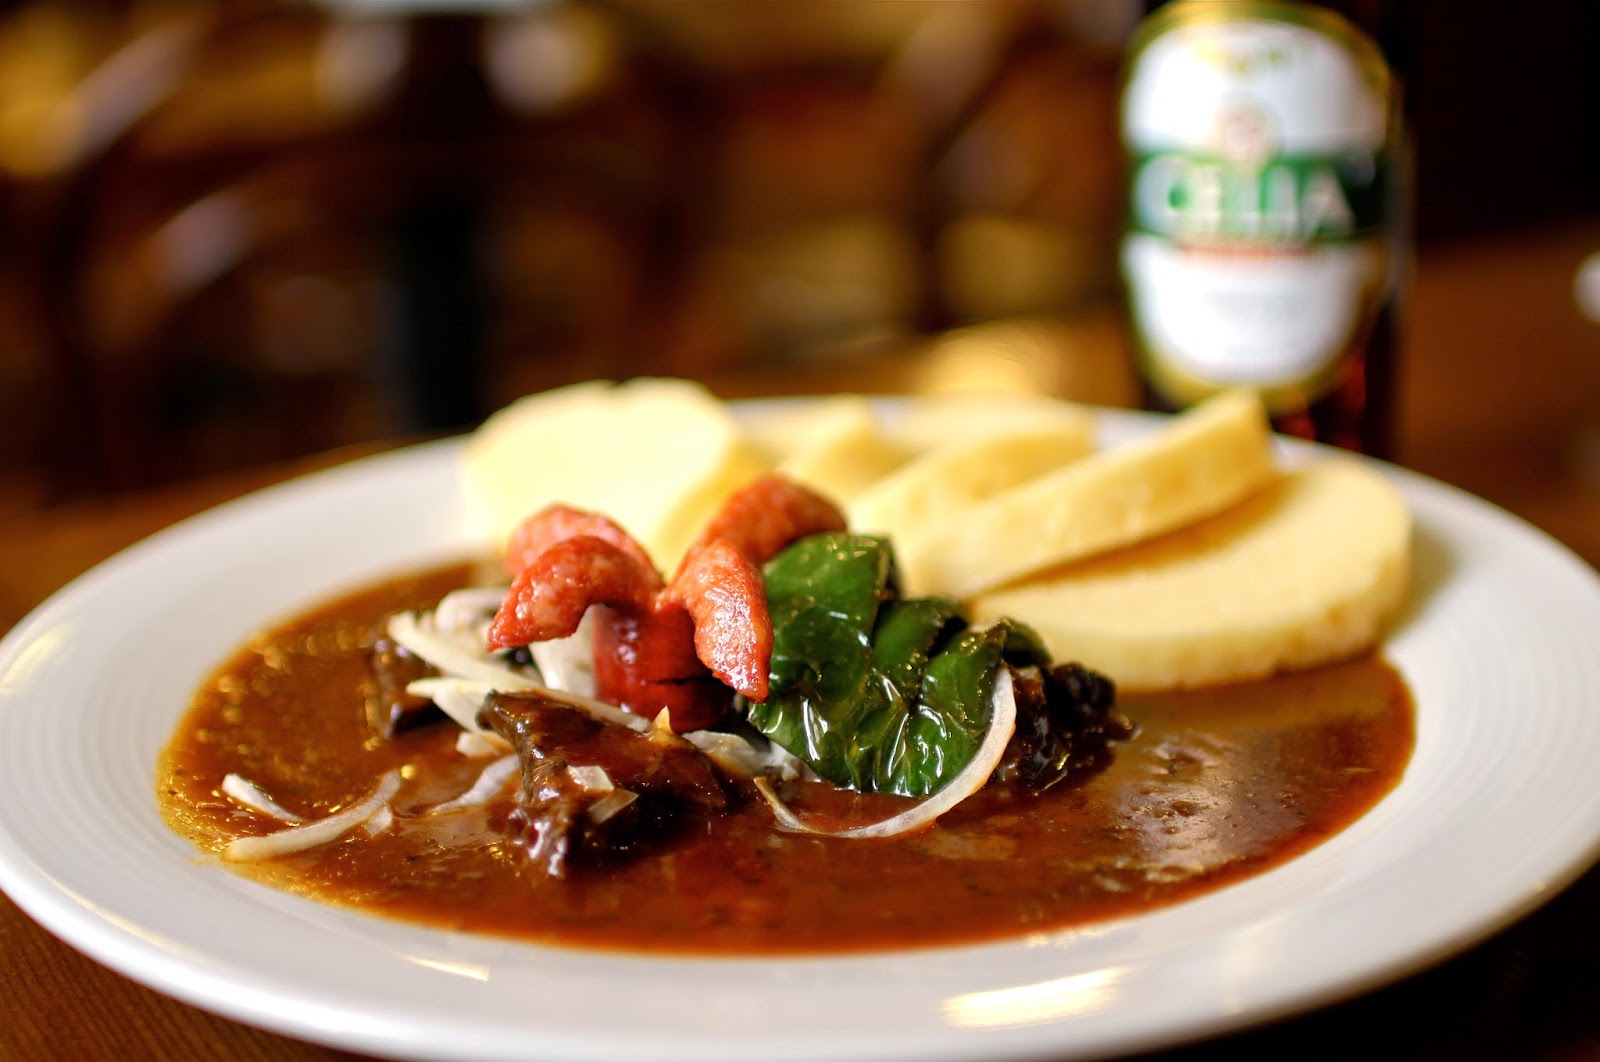 Gluten free goulash - Feasting Gluten Free in Prague